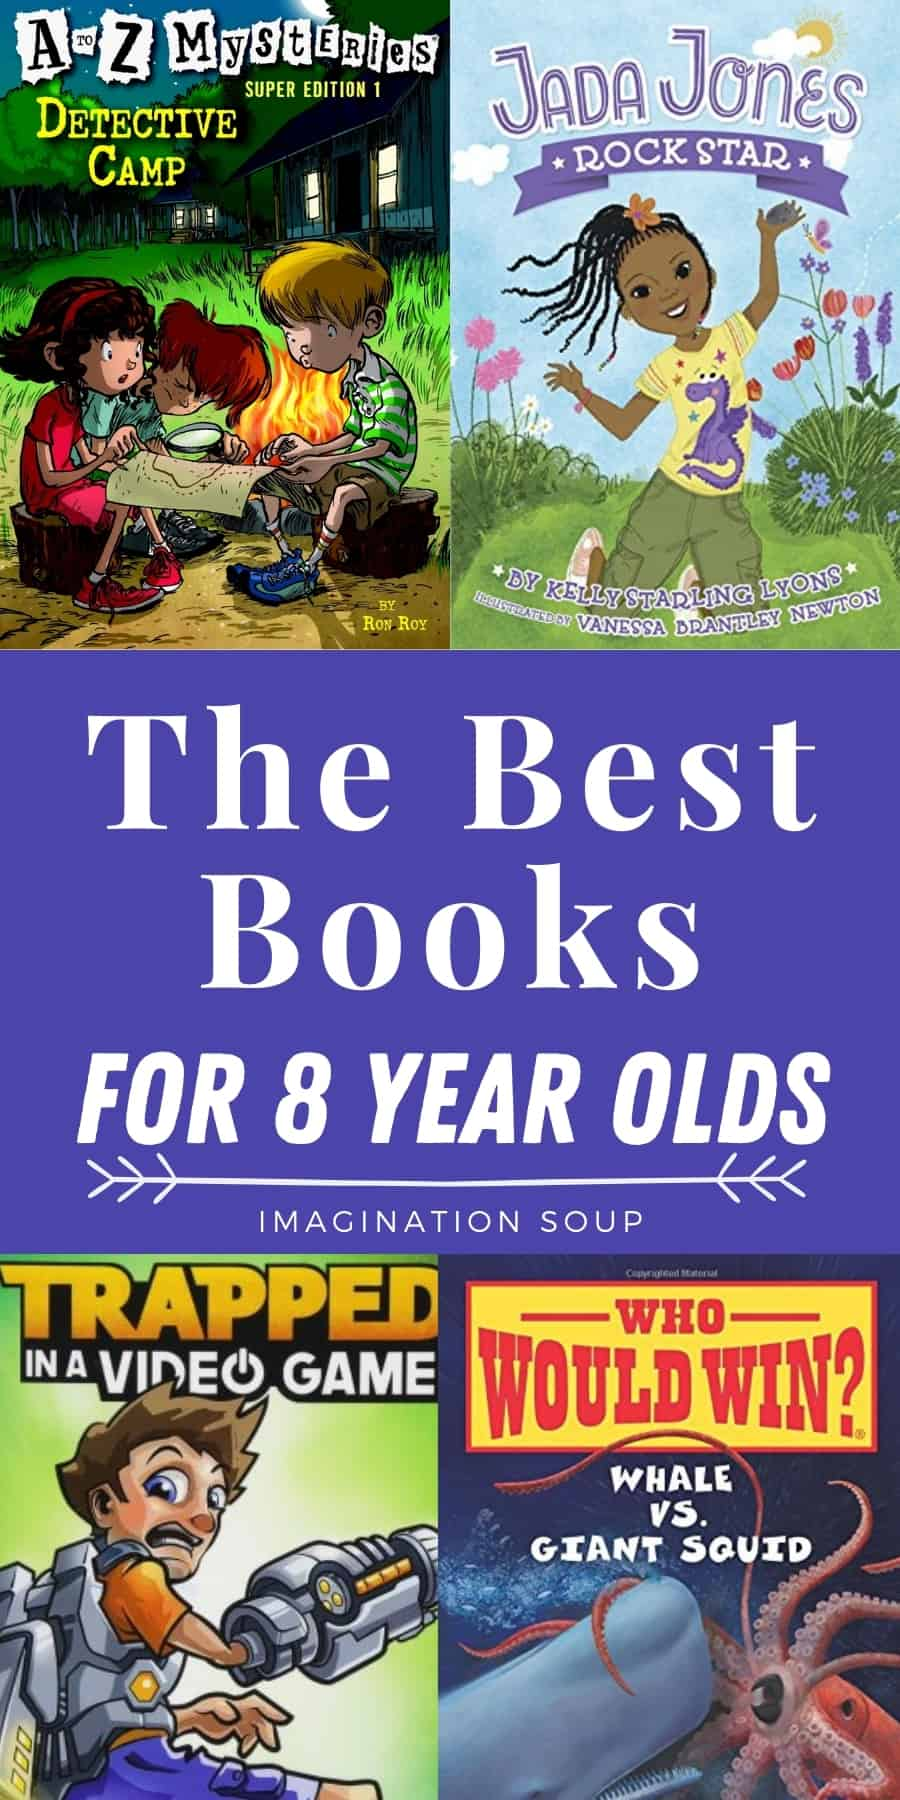 good books for 8 year old kids in 3rd grade